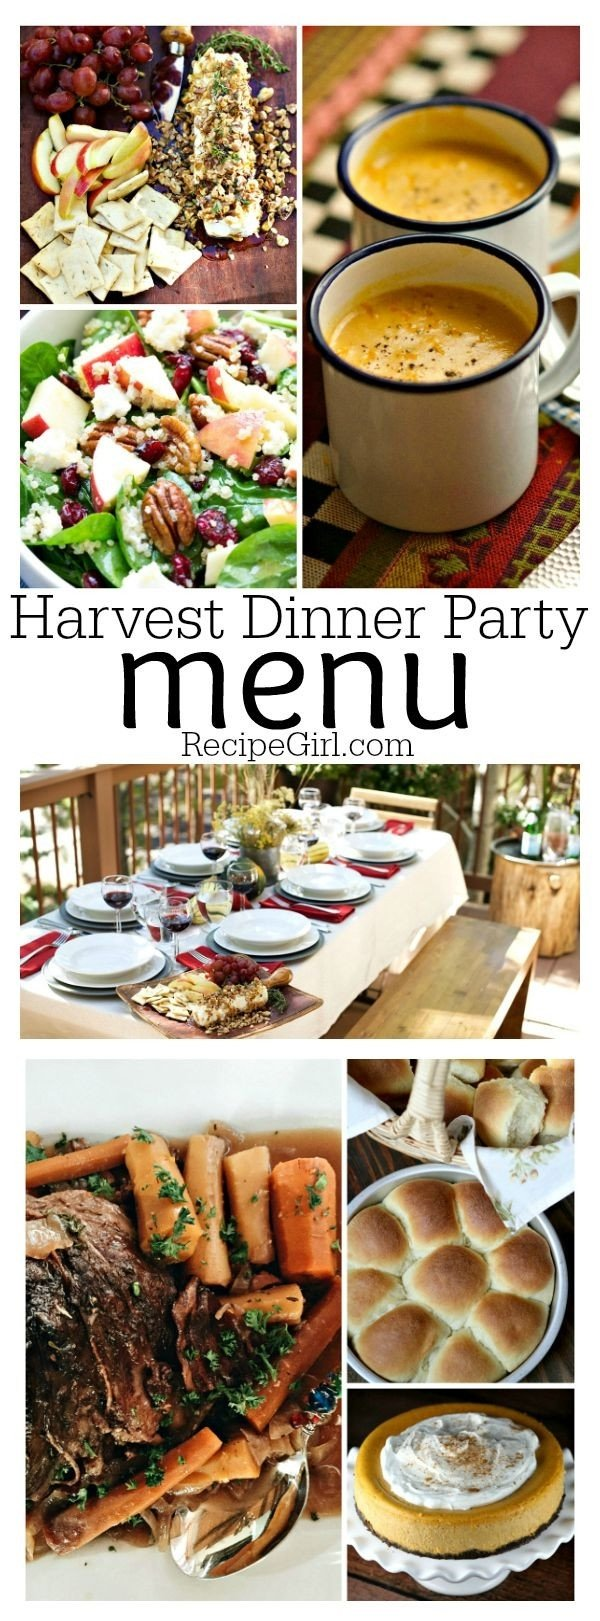 10 Attractive Dinner Party Menu Ideas For 20 20 luxury birthday dinner ideas birthdays ideas